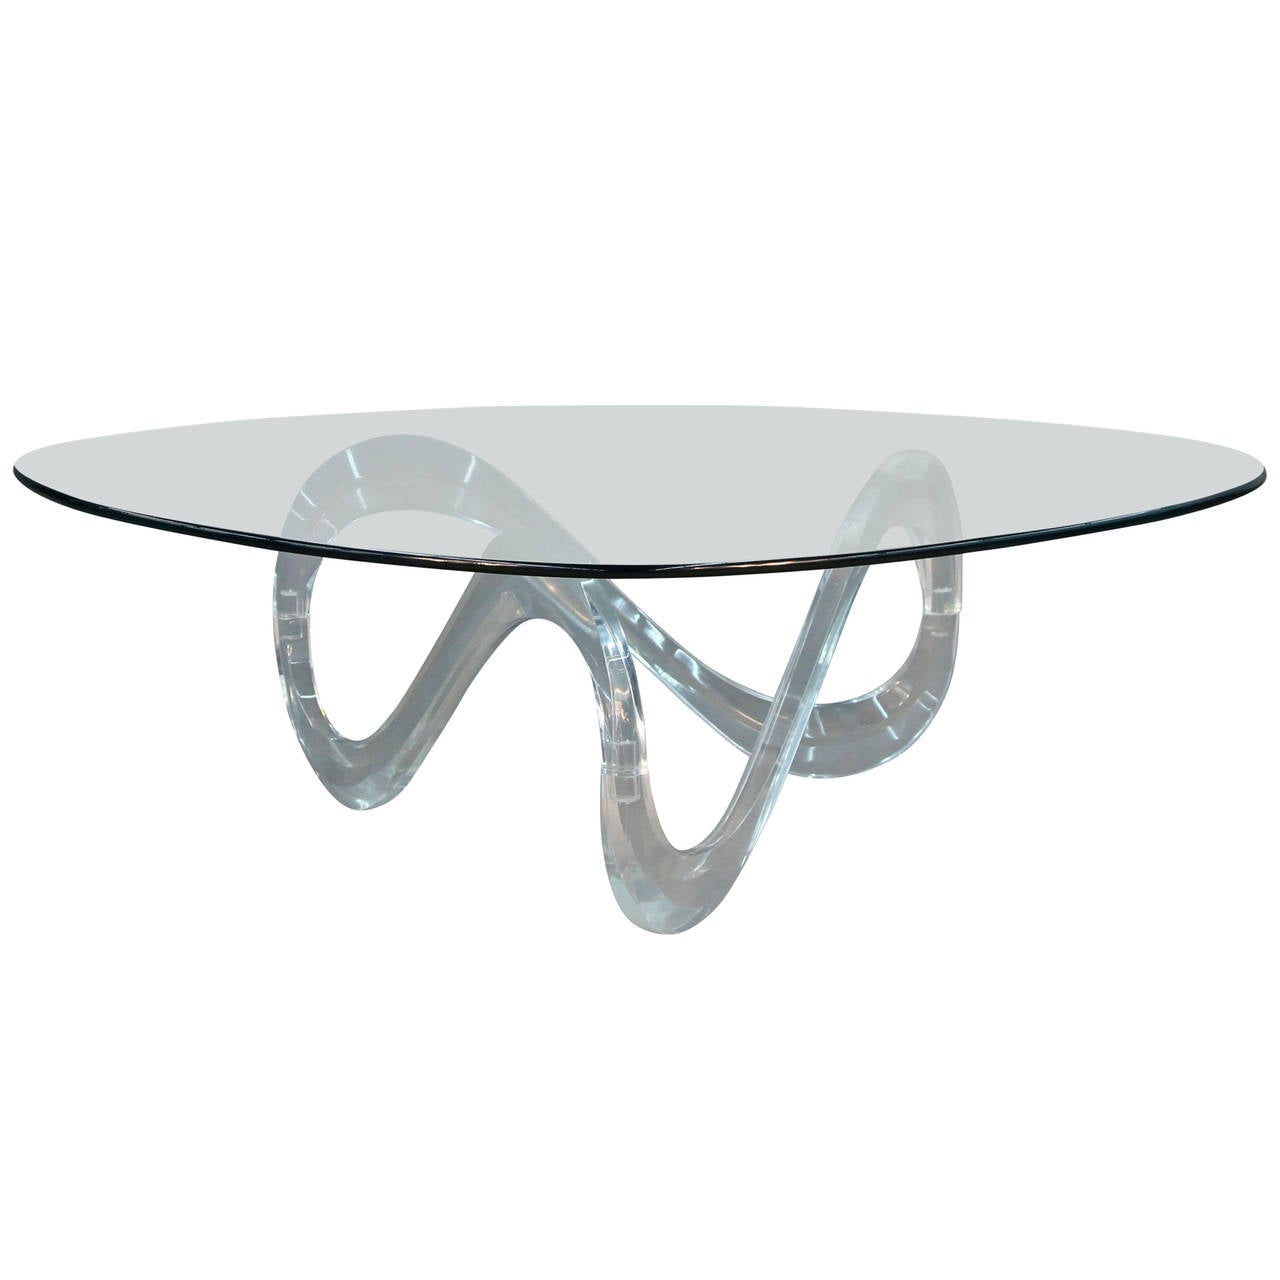 Lucite Infinity Base Triangular Coffee Table Charles Hollis Jones 1